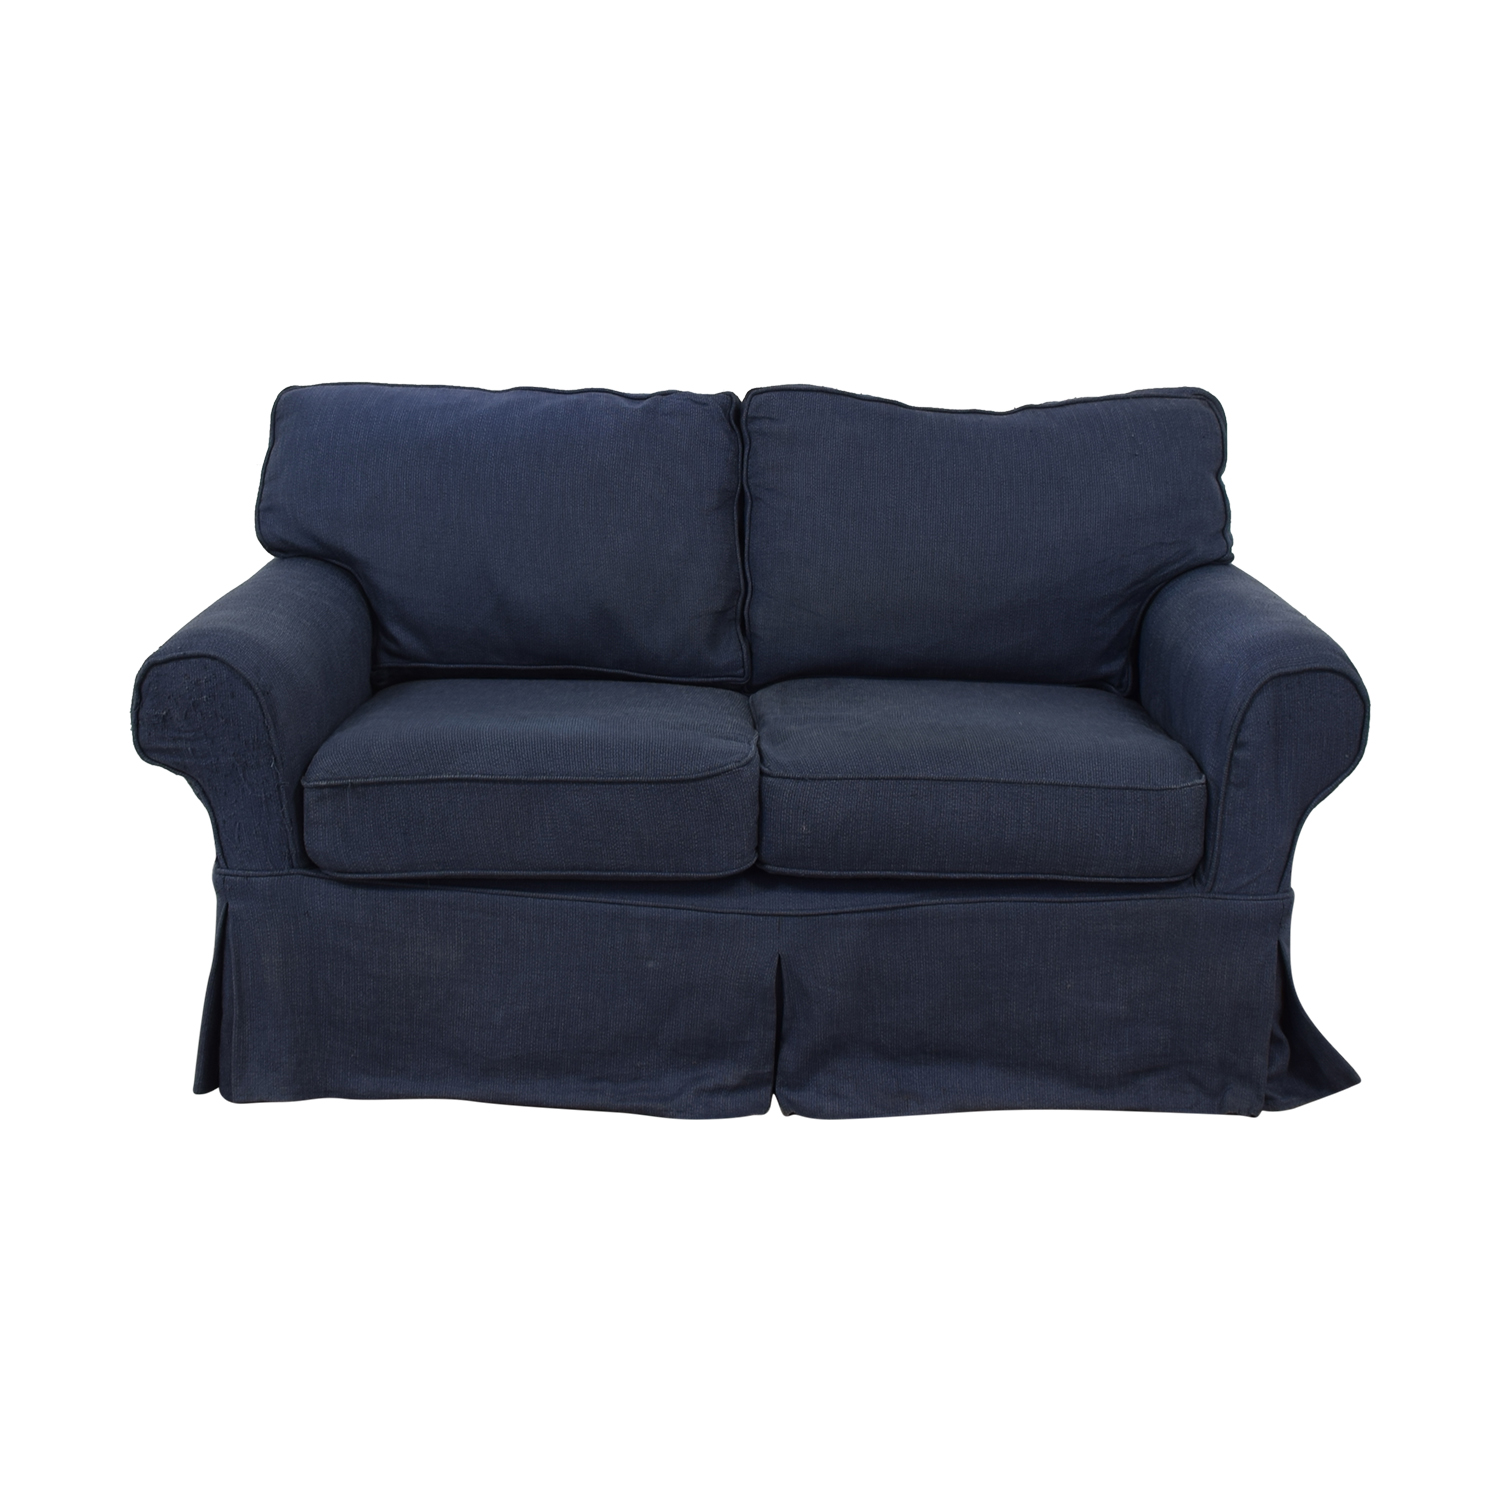 Pottery Barn Comfort Blue Slipcovered Loveseat Nyc